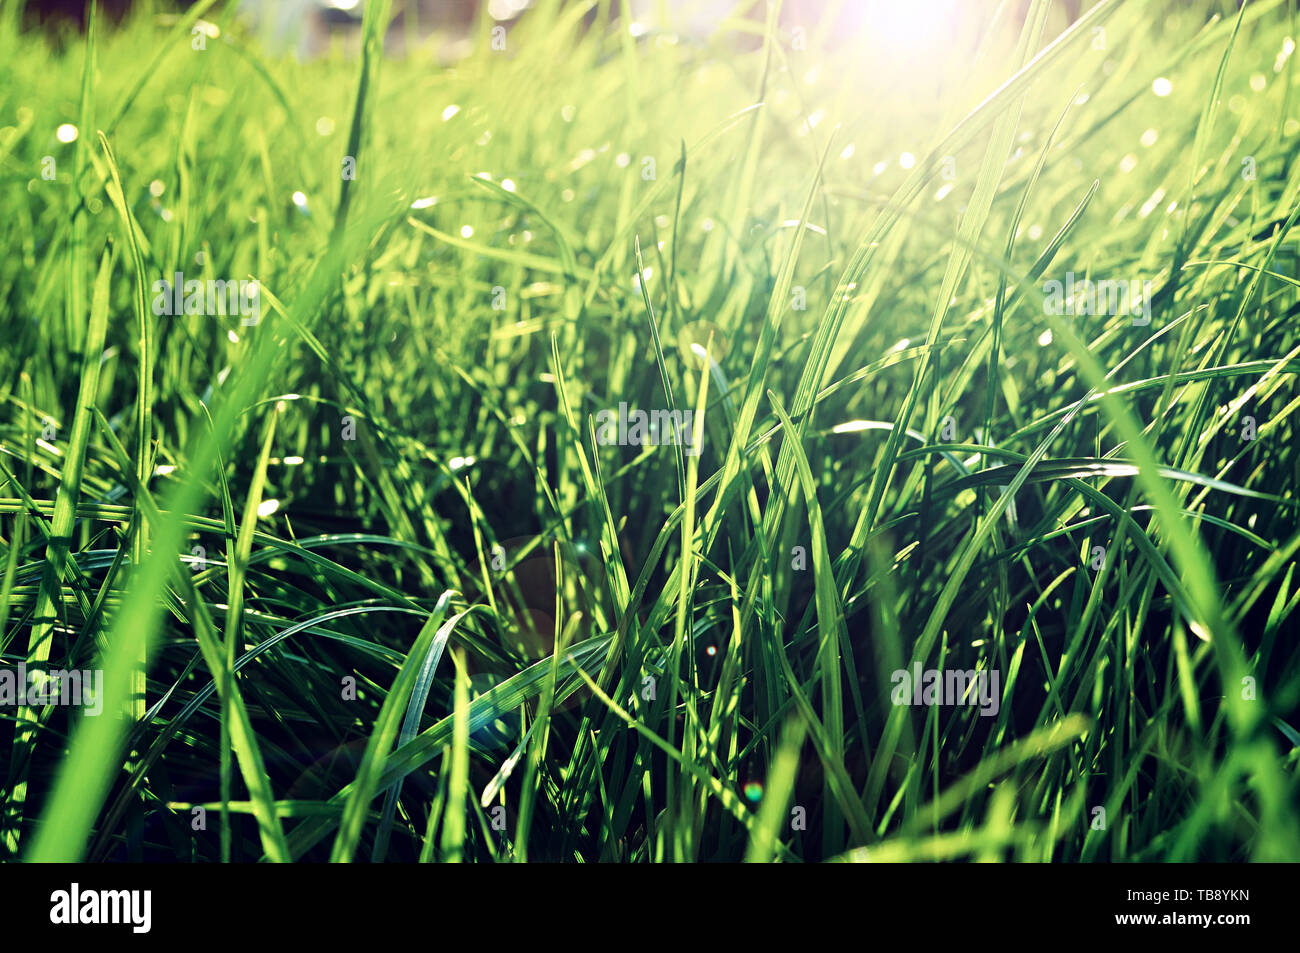 Summer grass background - closeup of fresh bright green grass on the lawn lit by shining sunbeams. Grass landscape, lowest point of shooting - Stock Image